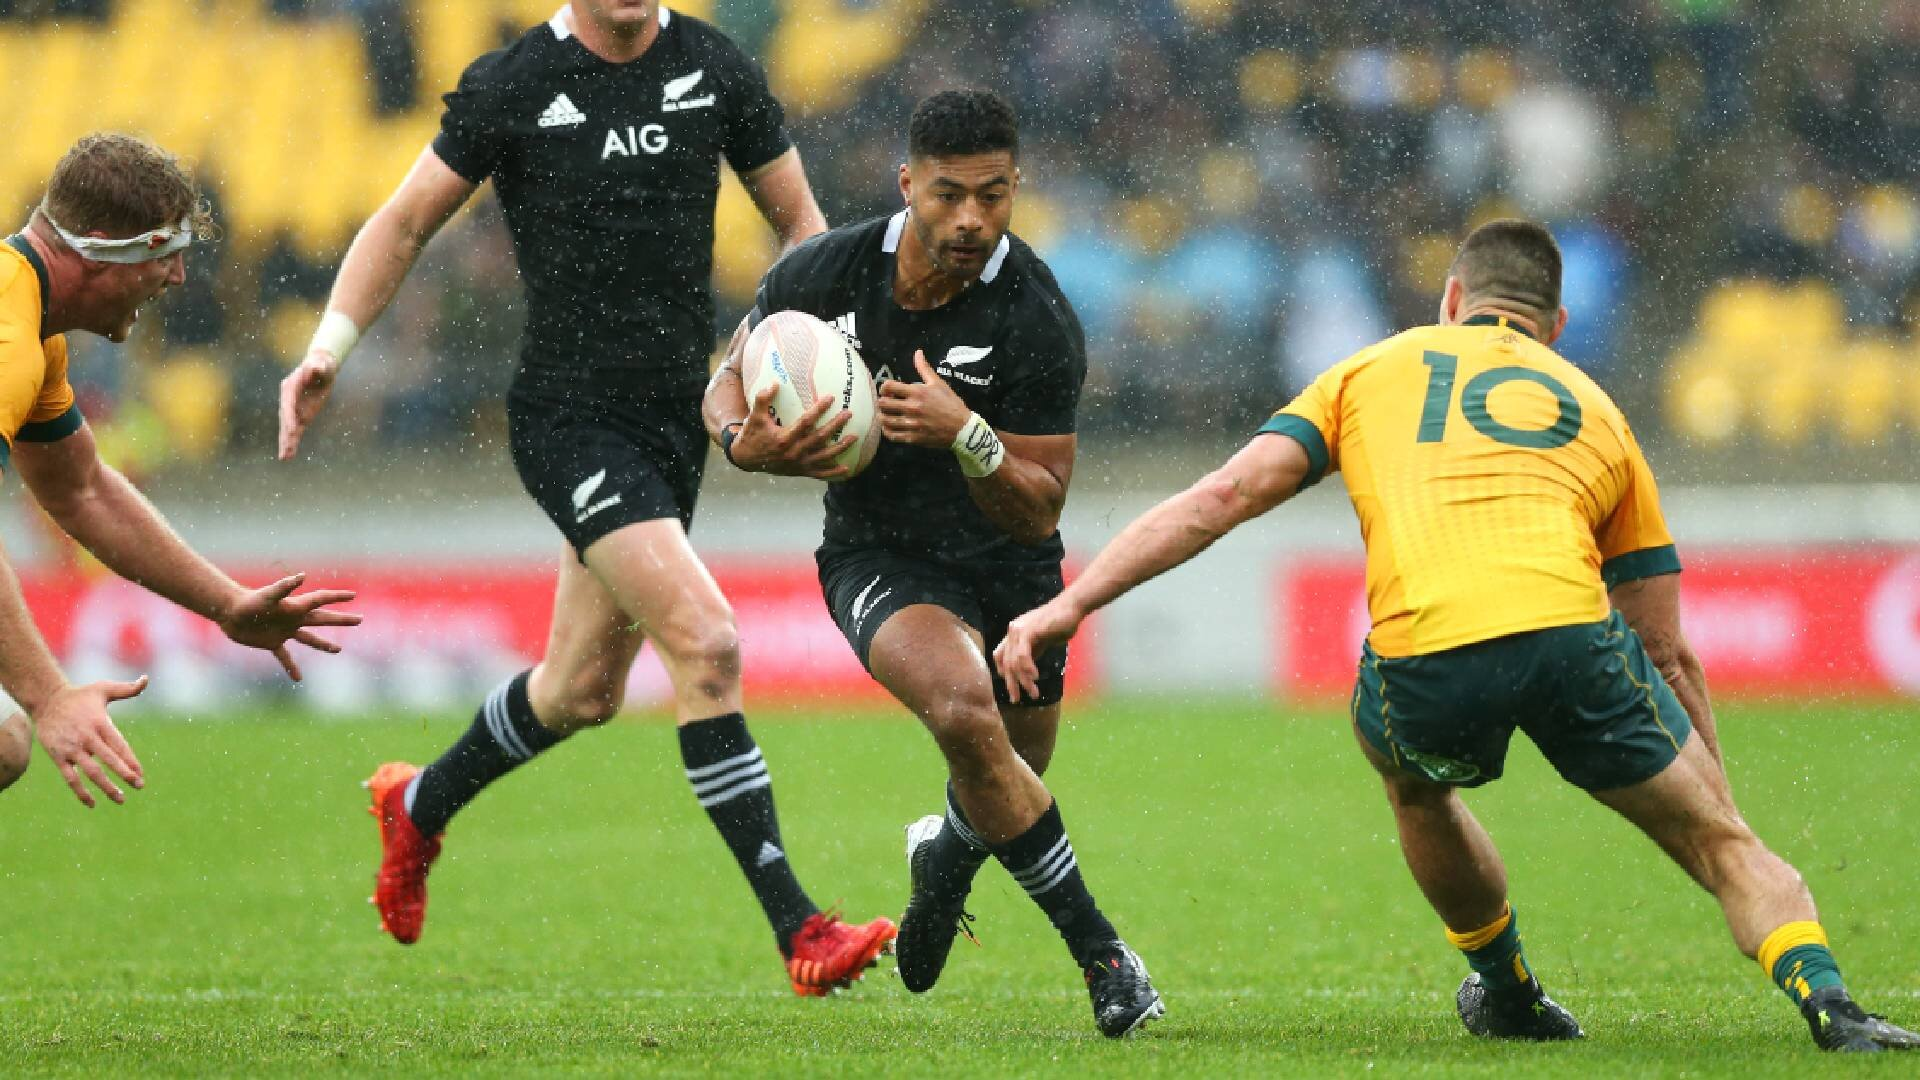 Bledis-low blow: The 'dirty' tactic Wallabies got away with on All Blacks star Richie Mo'unga